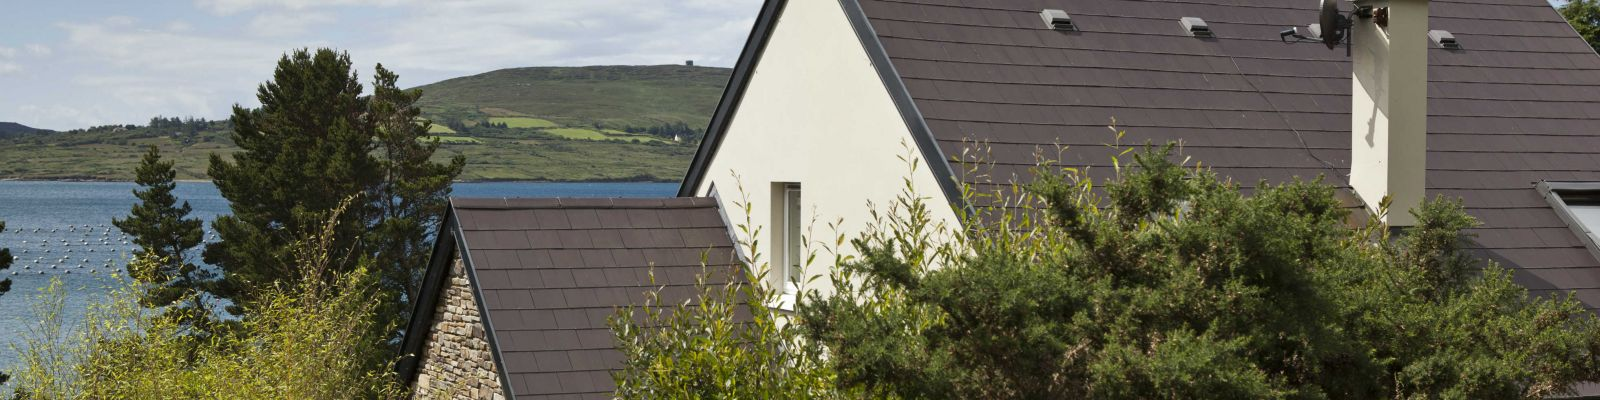 Berehaven Business Accommodation